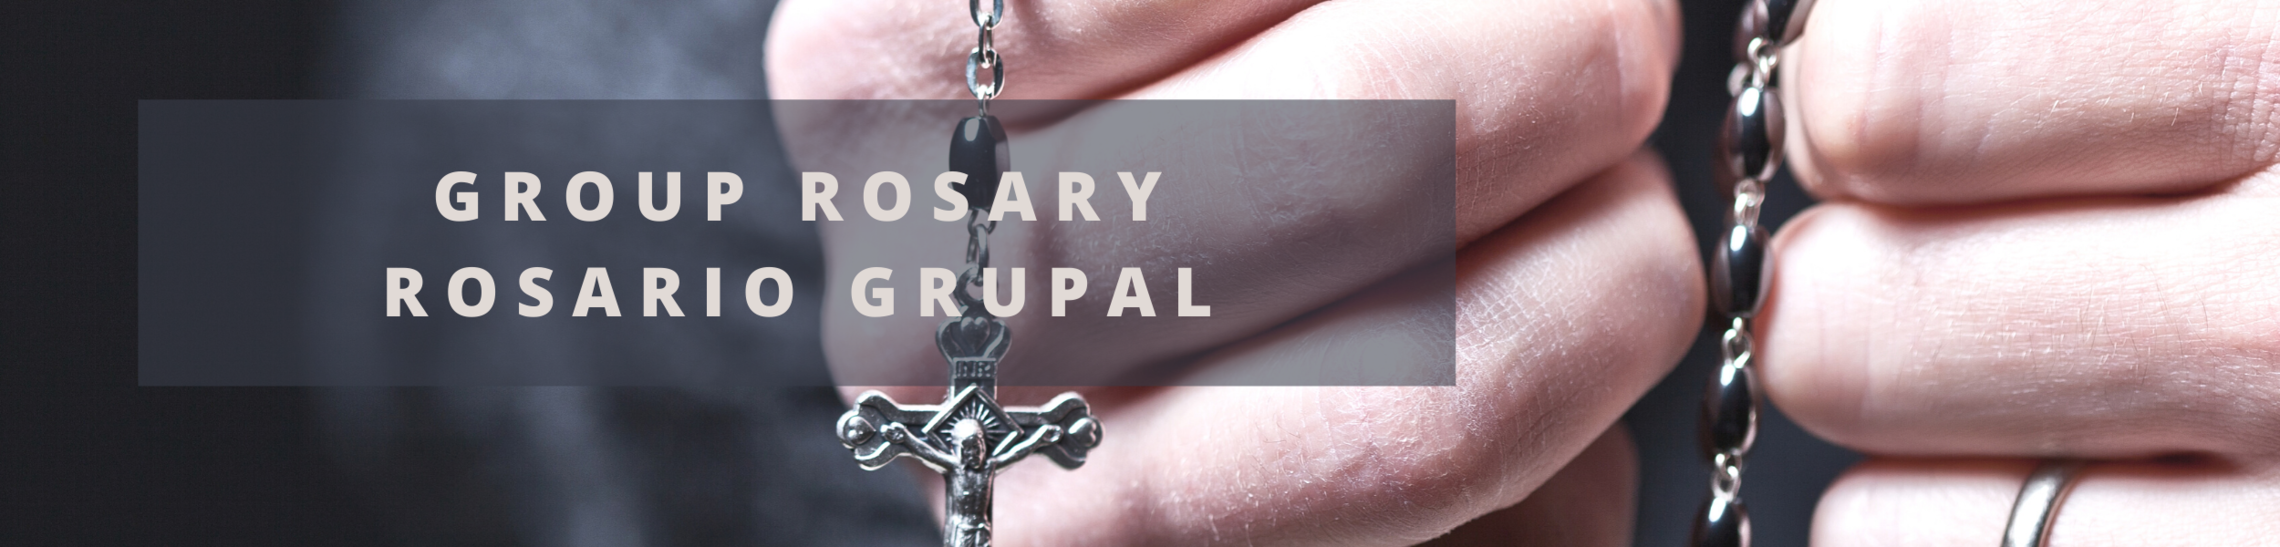 Group Rosary